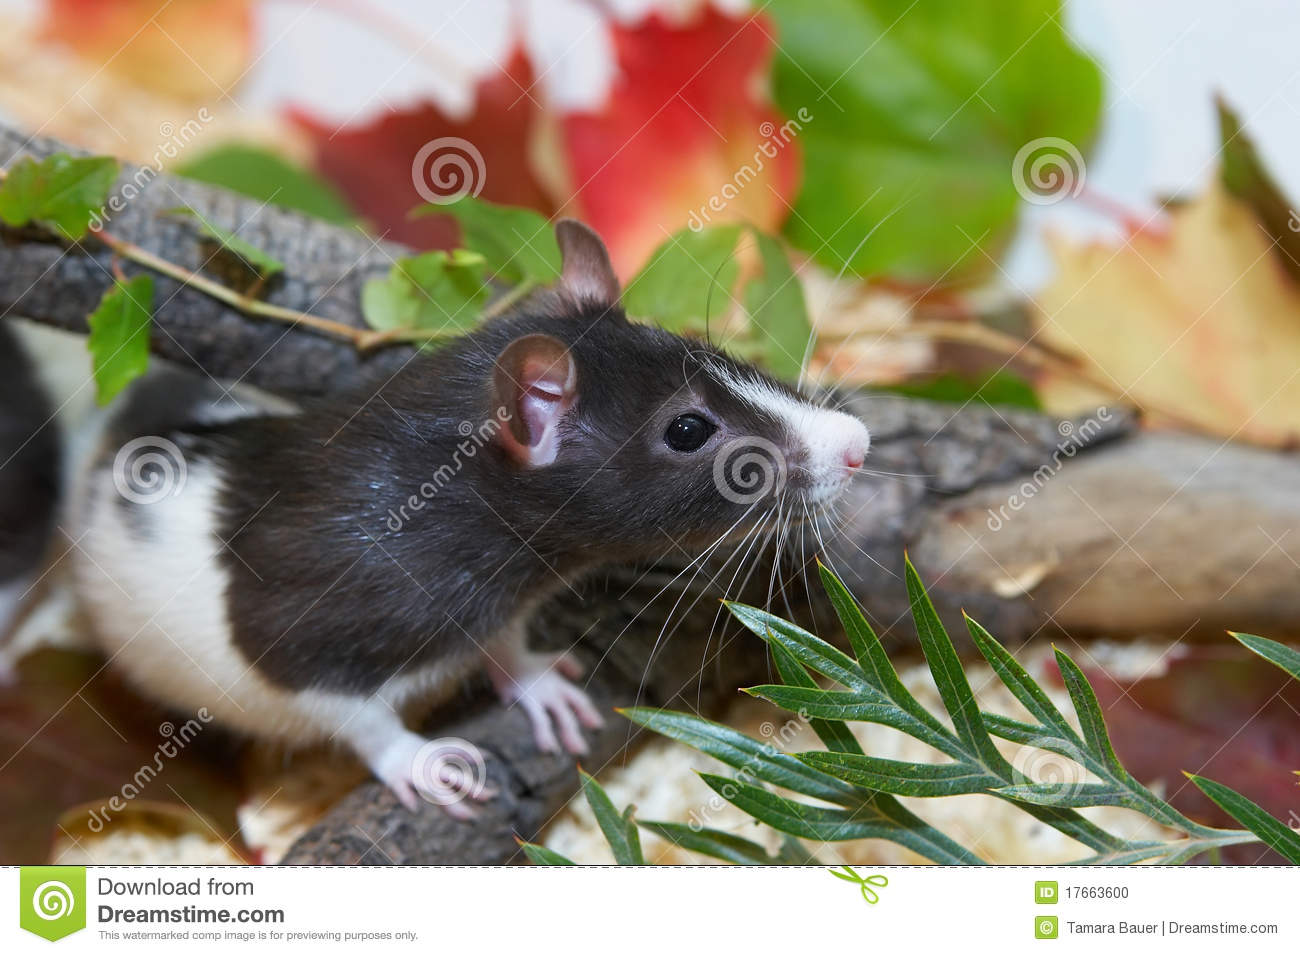 Rat Jardin Rat In Garden Stock Photo Image 17663600